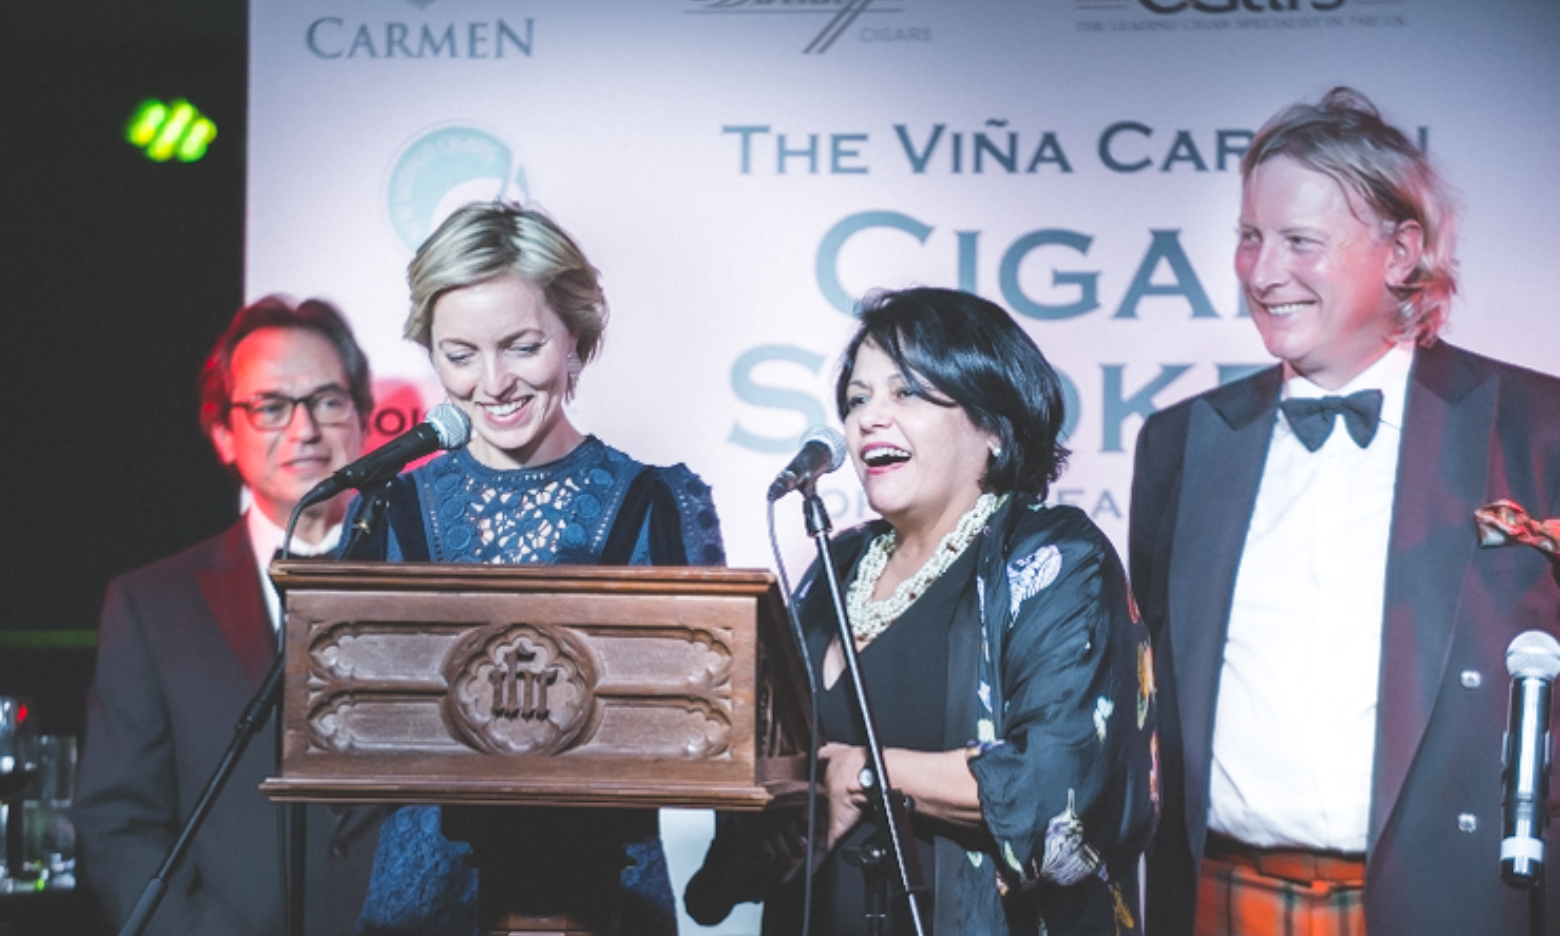 BOISDALE'S SEVENTH ANNUAL VIÑA CARMEN CIGAR SMOKER OF THE YEAR 2019